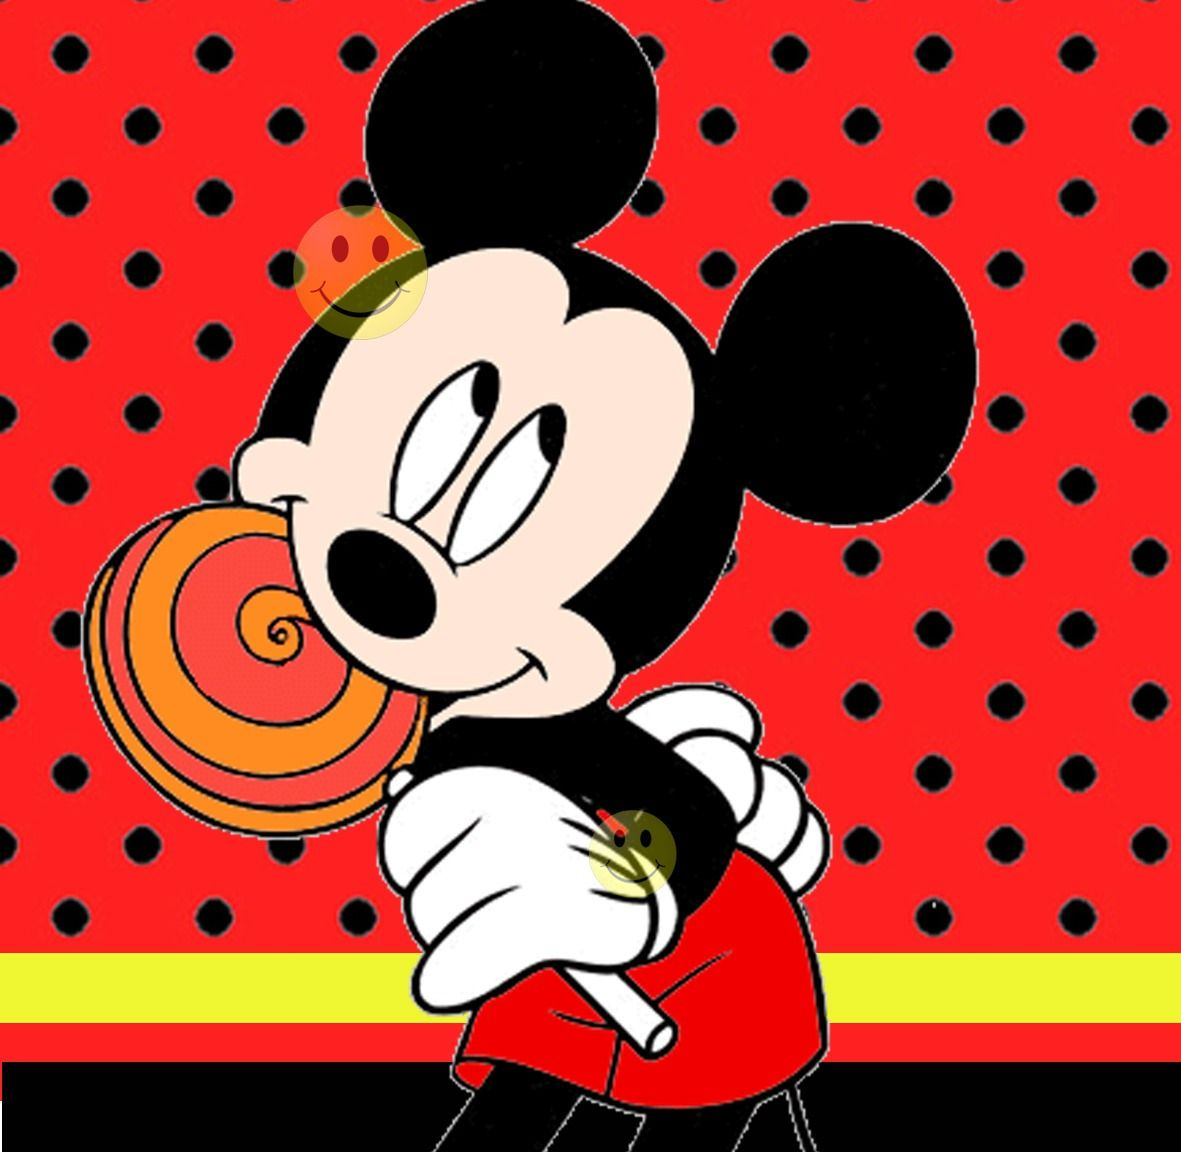 Beautiful Wallpaper Halloween Mickey Mouse - dc8a1ae82174adf7a0949af13c6e2042  You Should Have_602429.jpg